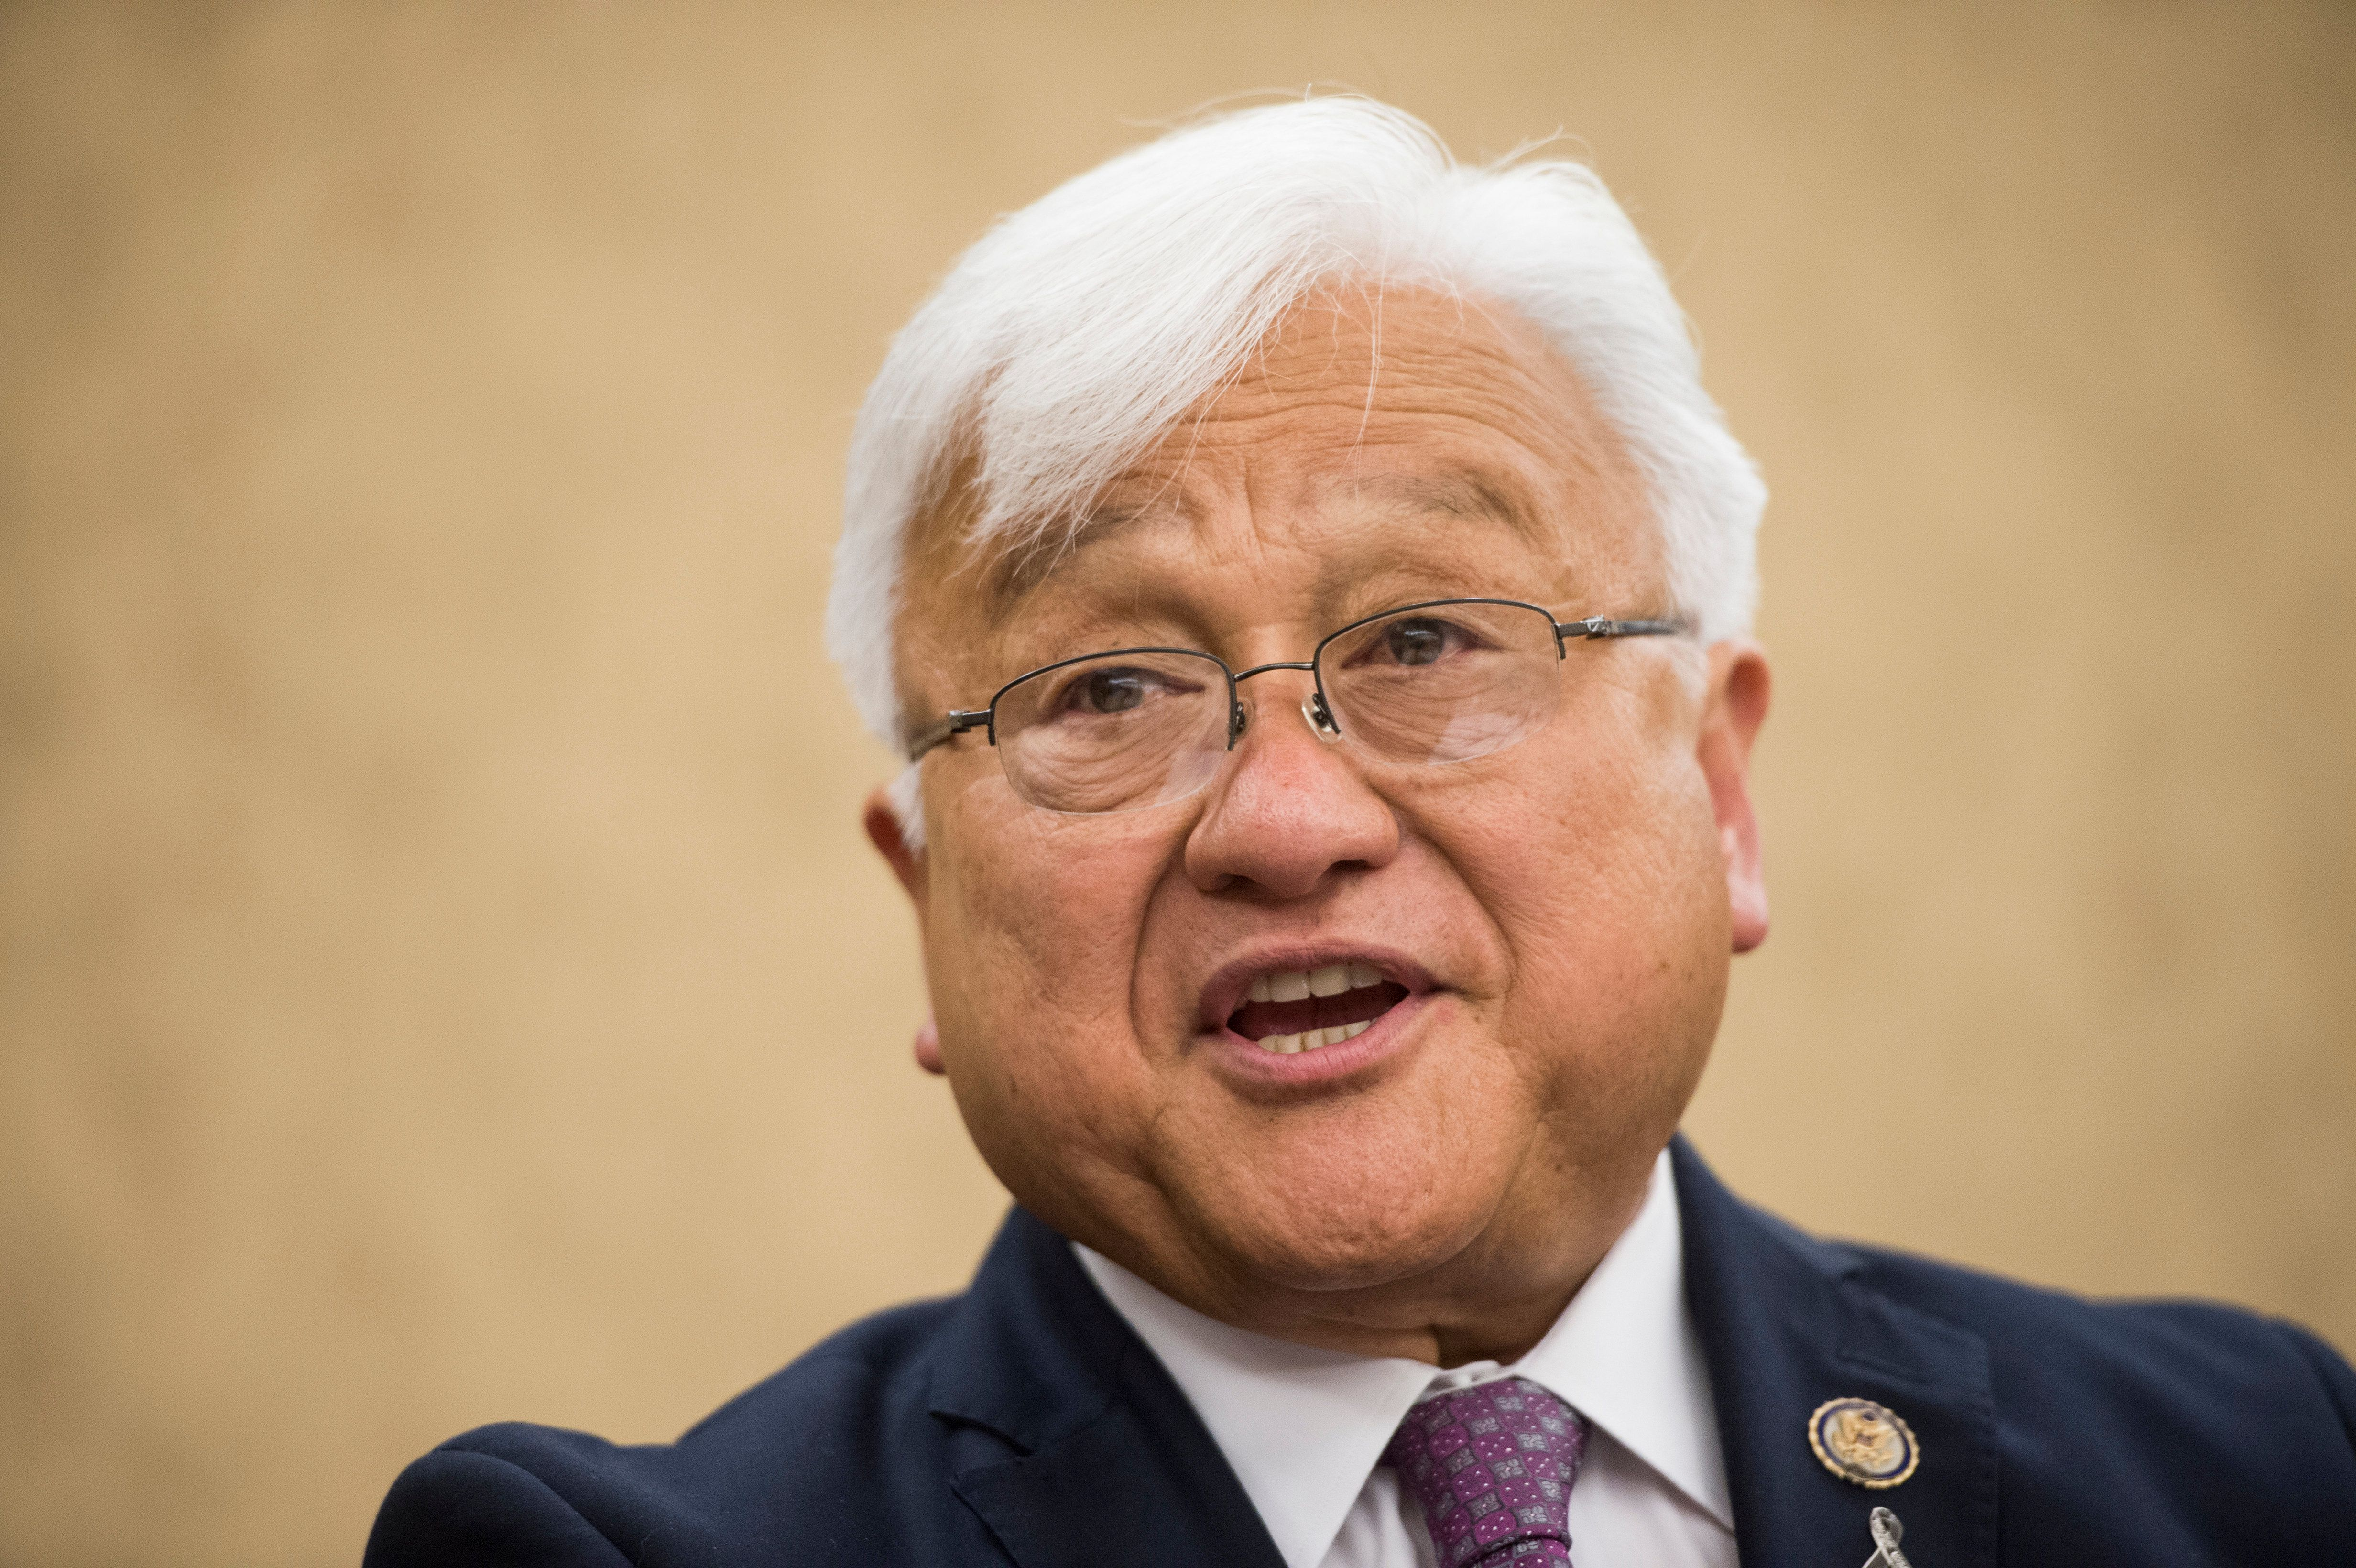 Rep. Mike Honda (D-Calif.) says it's time to officially recognize a secular version of the National Day of Prayer.